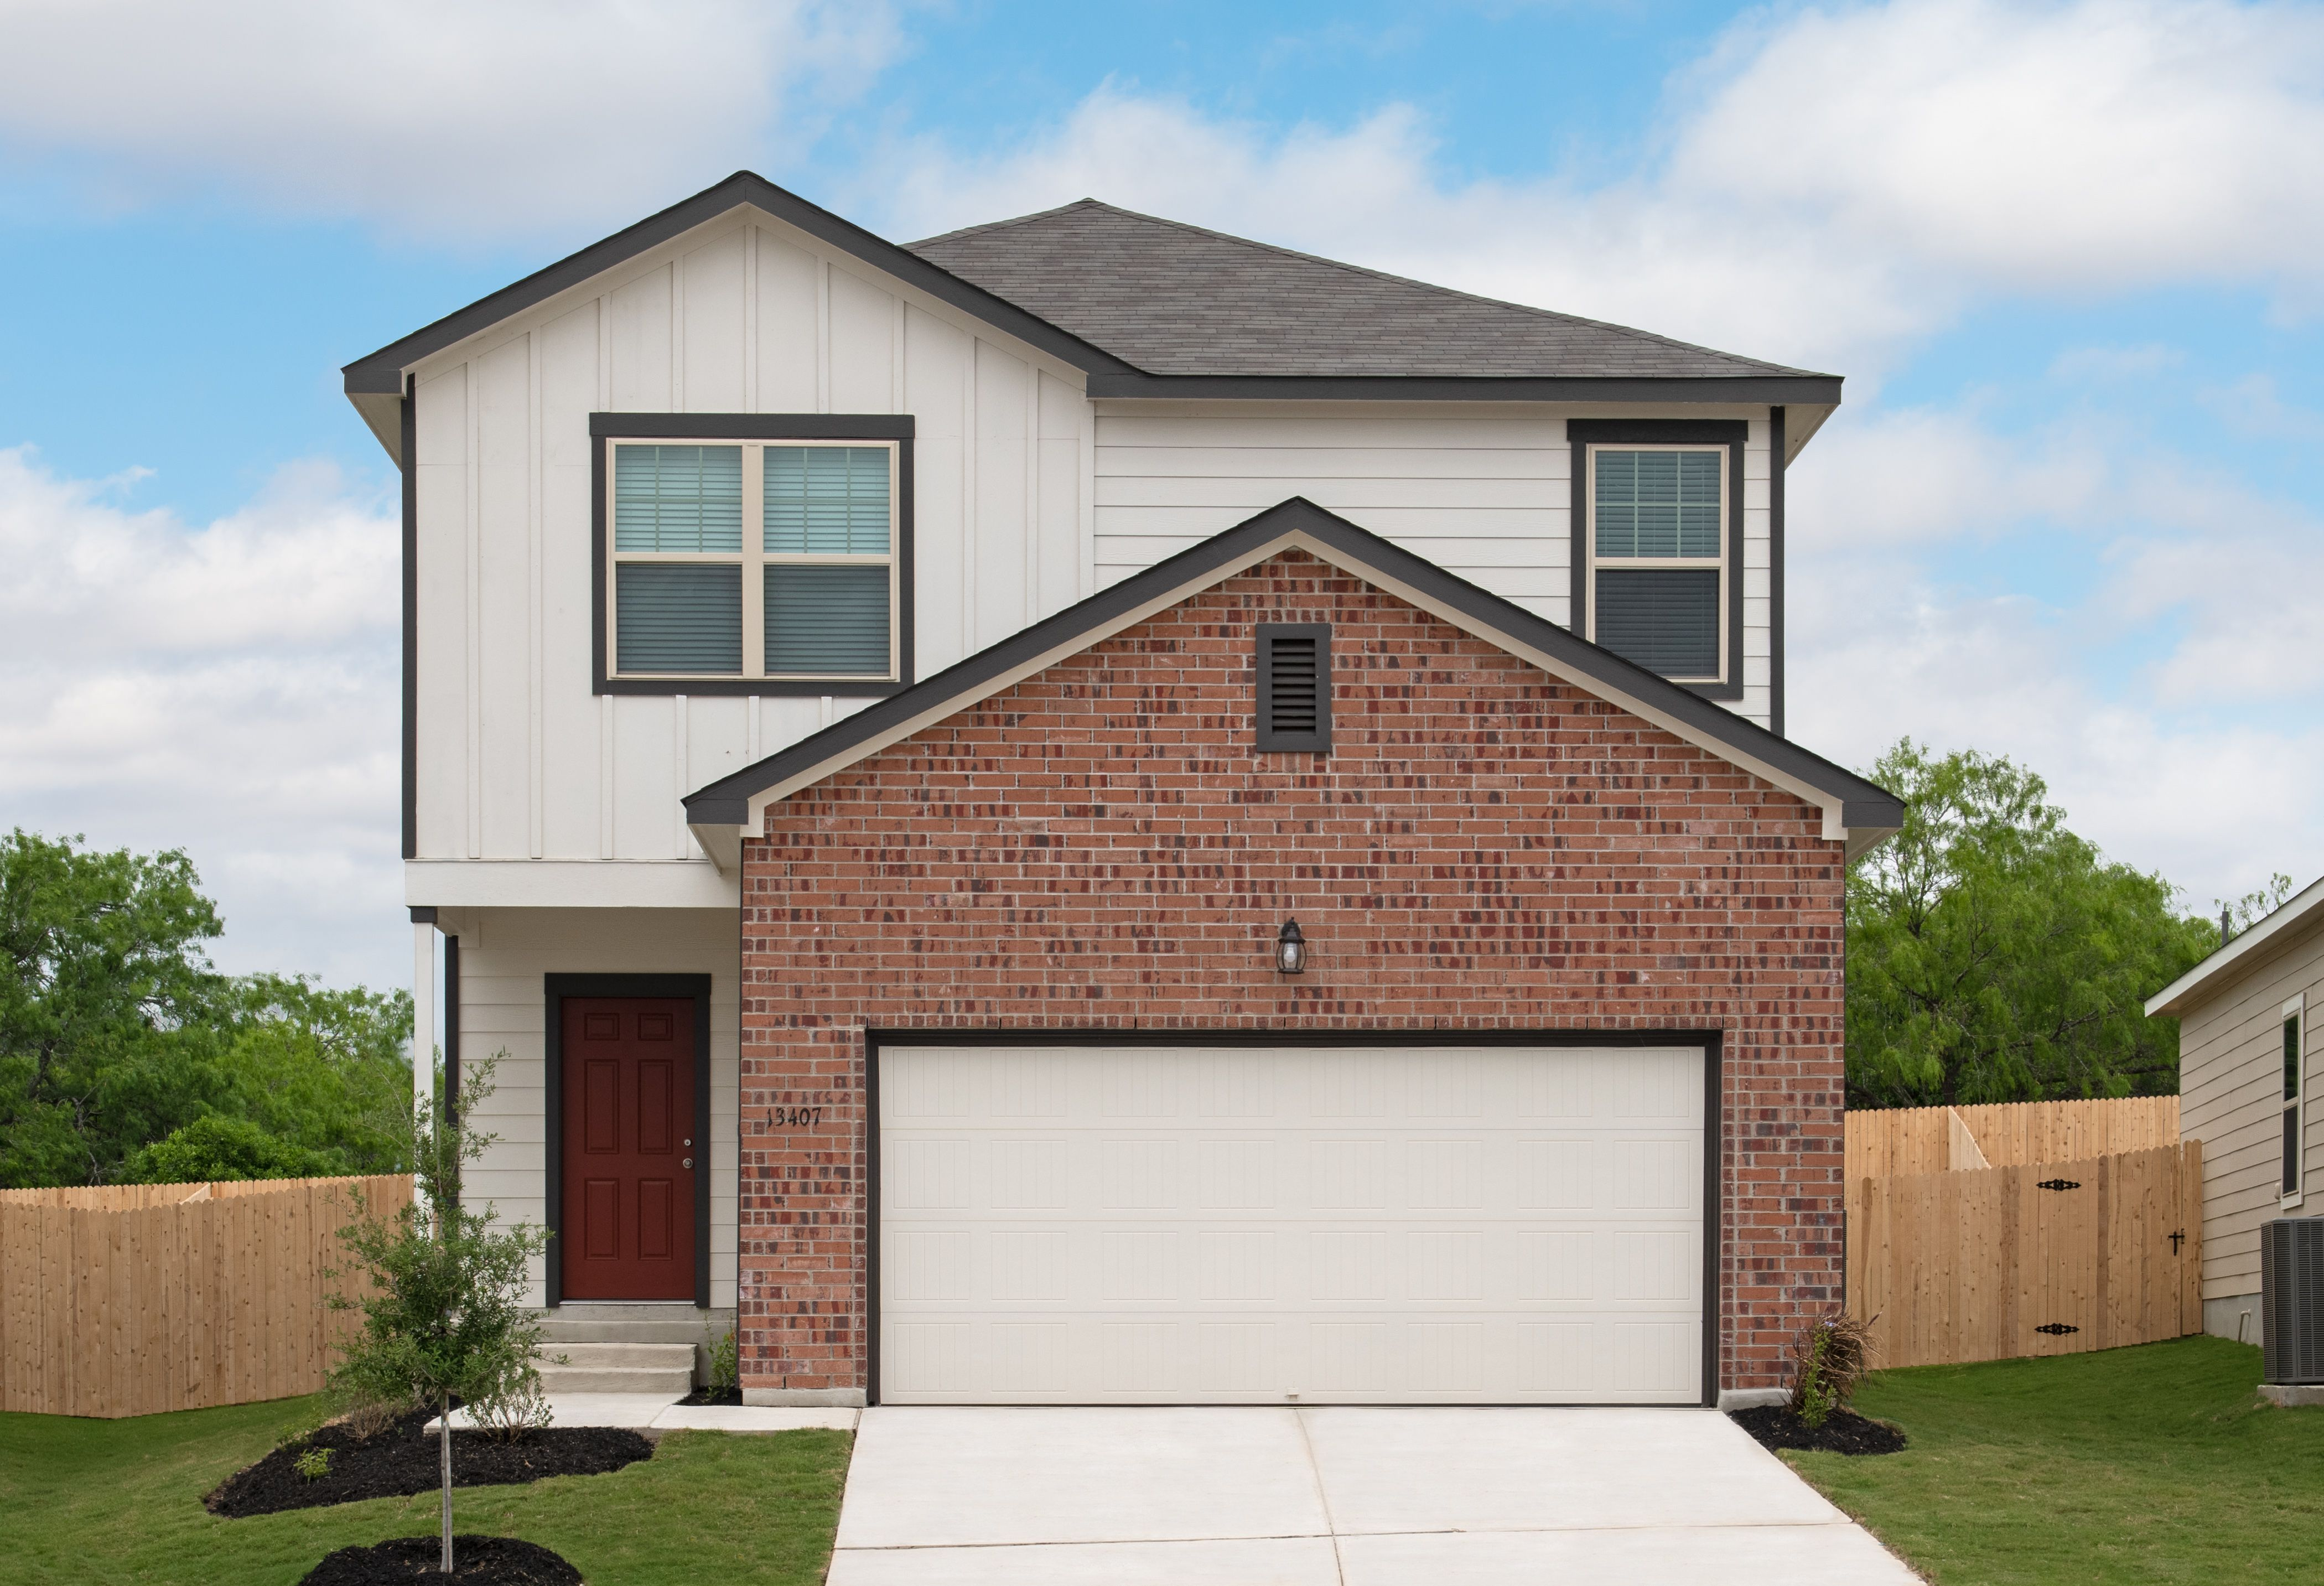 New Starlight Homes And Communities In Houston Tx | The Fine